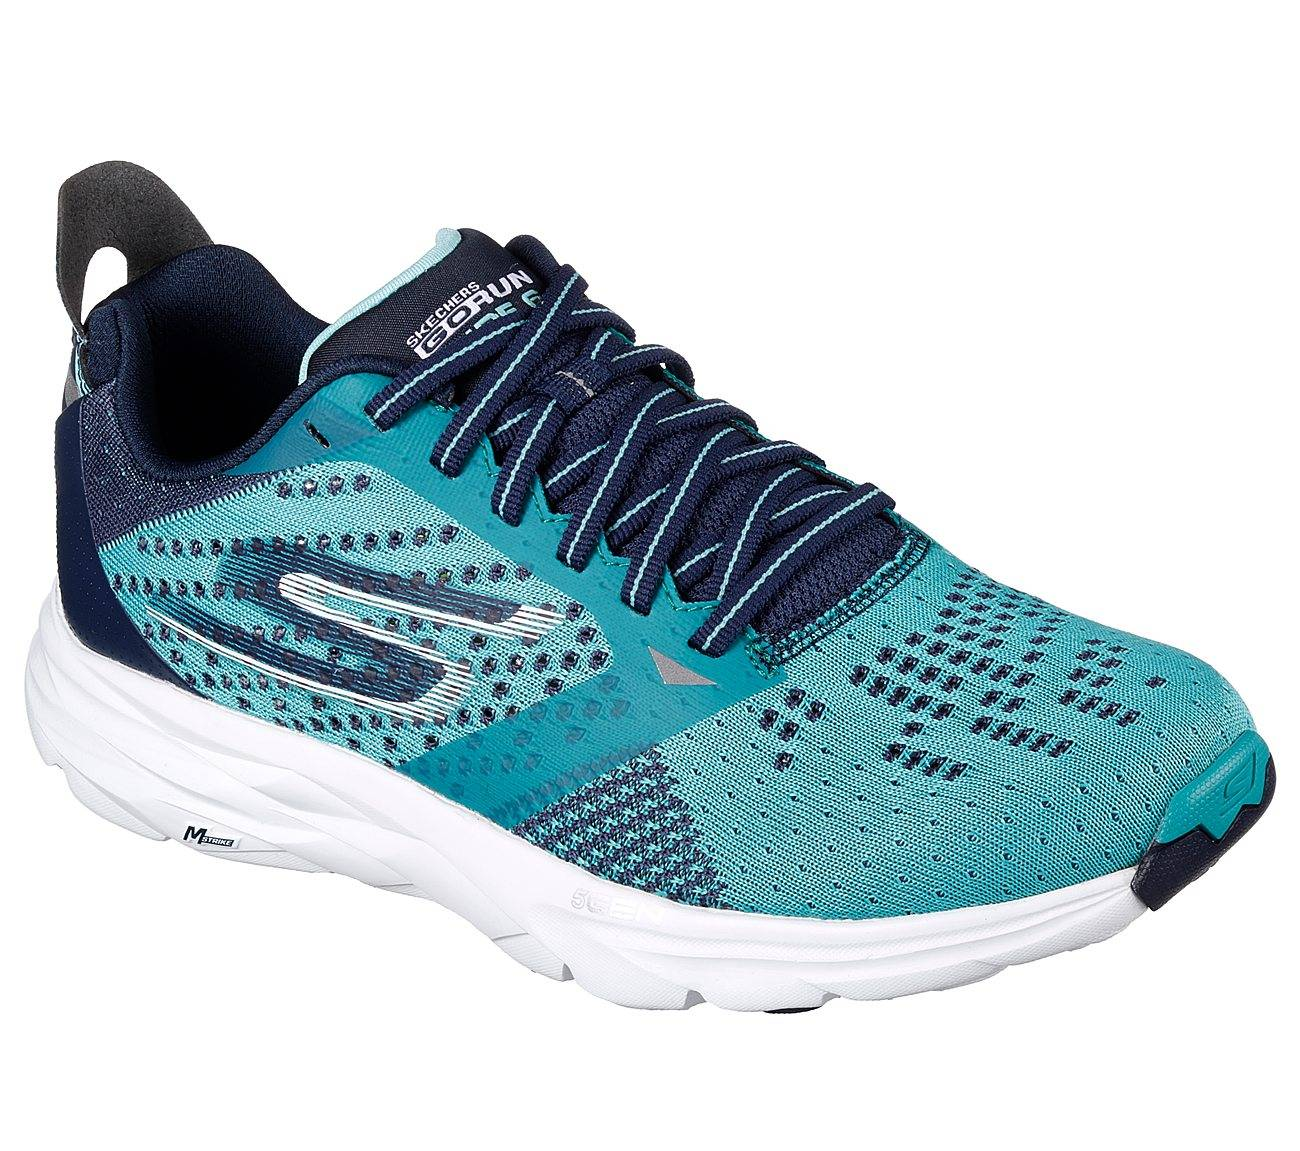 Skechers GoRun Ride 6 shoes